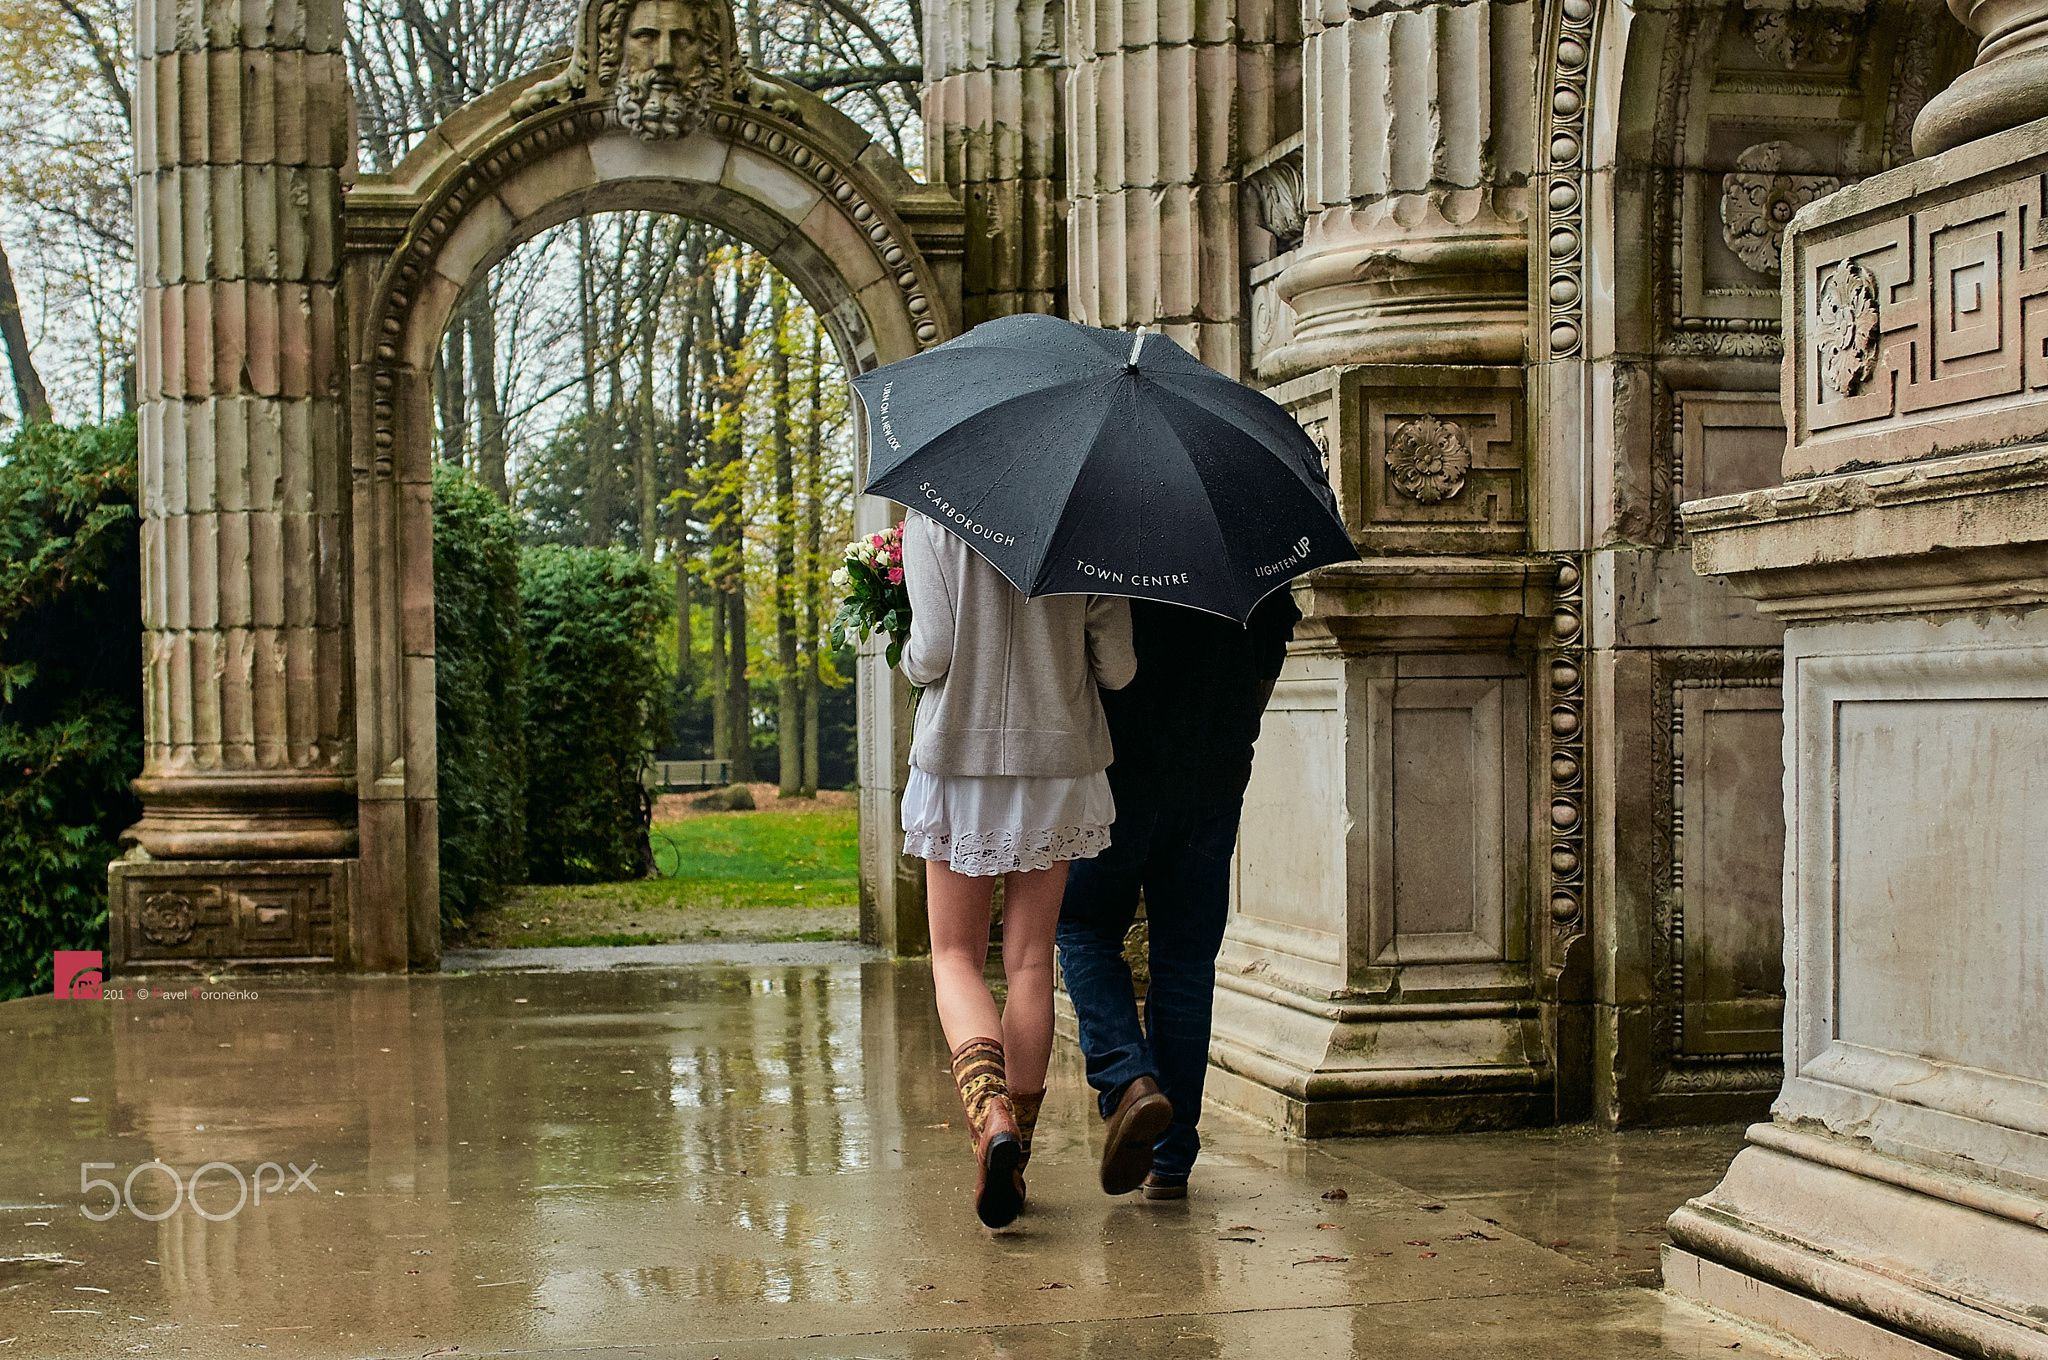 Walking Between The Raindrops With You